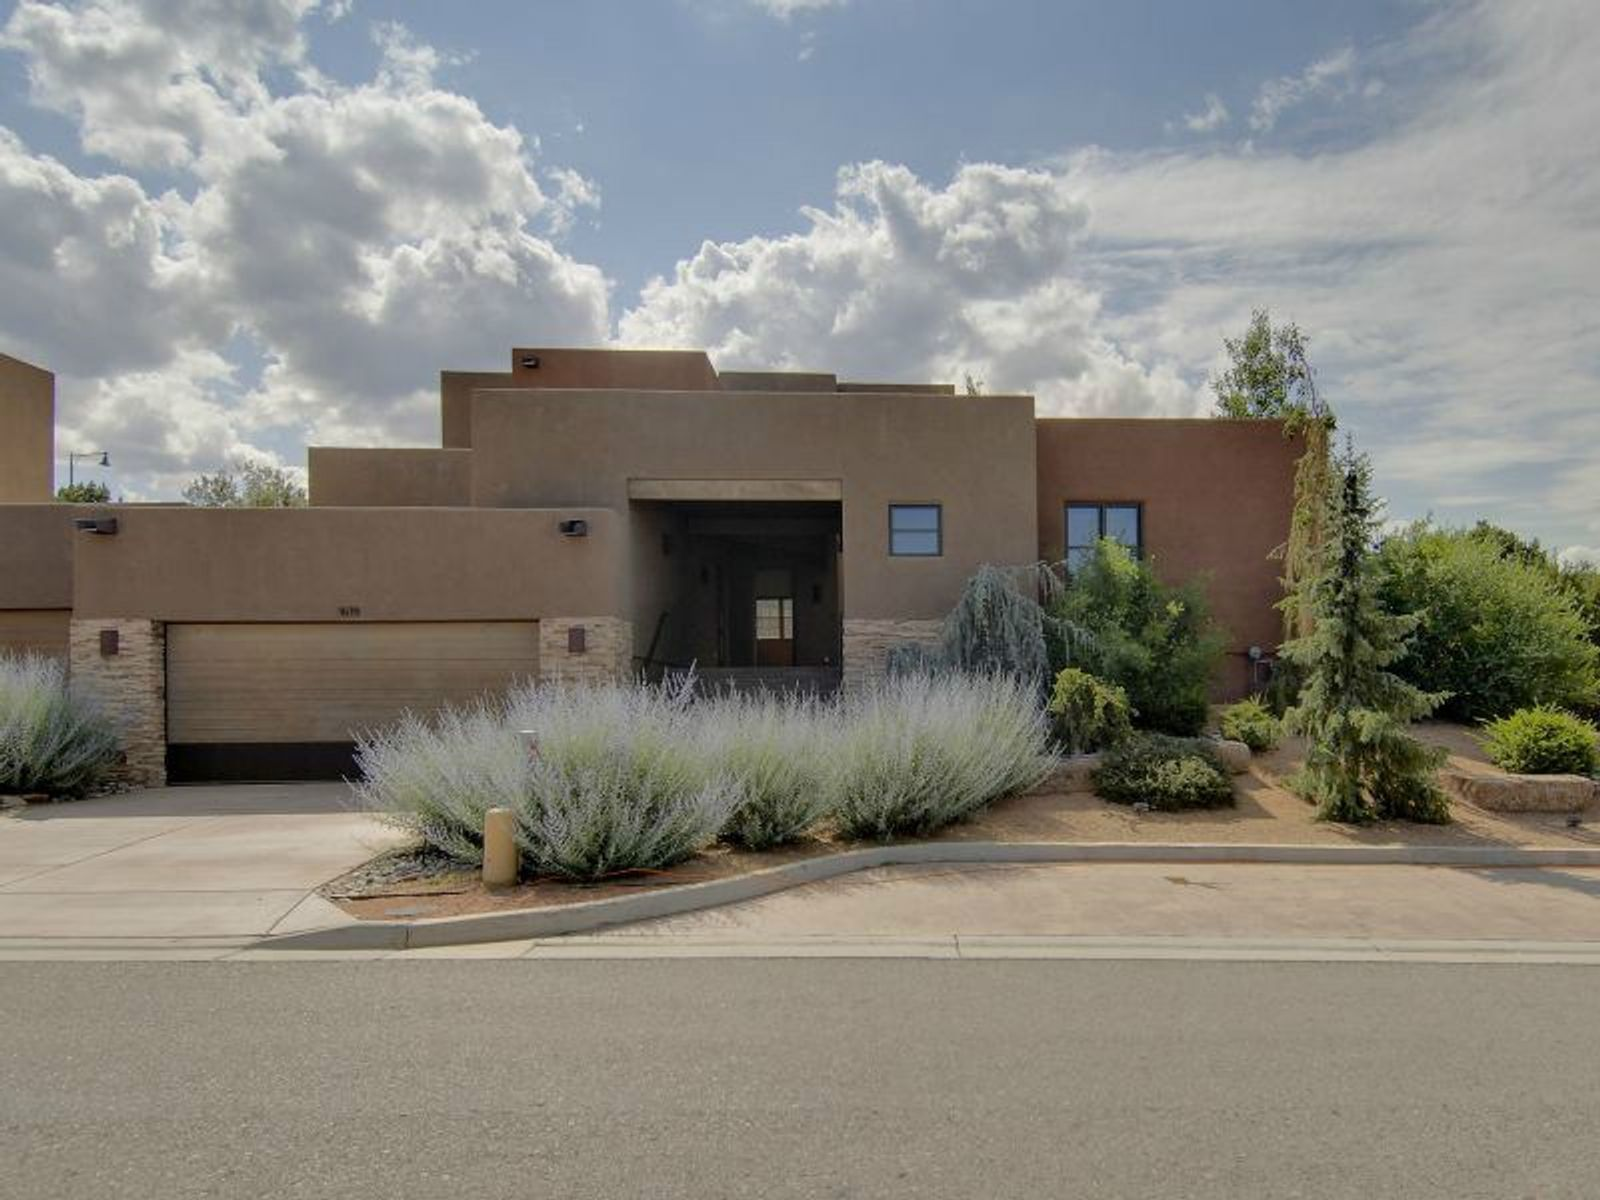 1619 Villa Strada, Santa Fe NM Townhouse - Santa Fe Real Estate